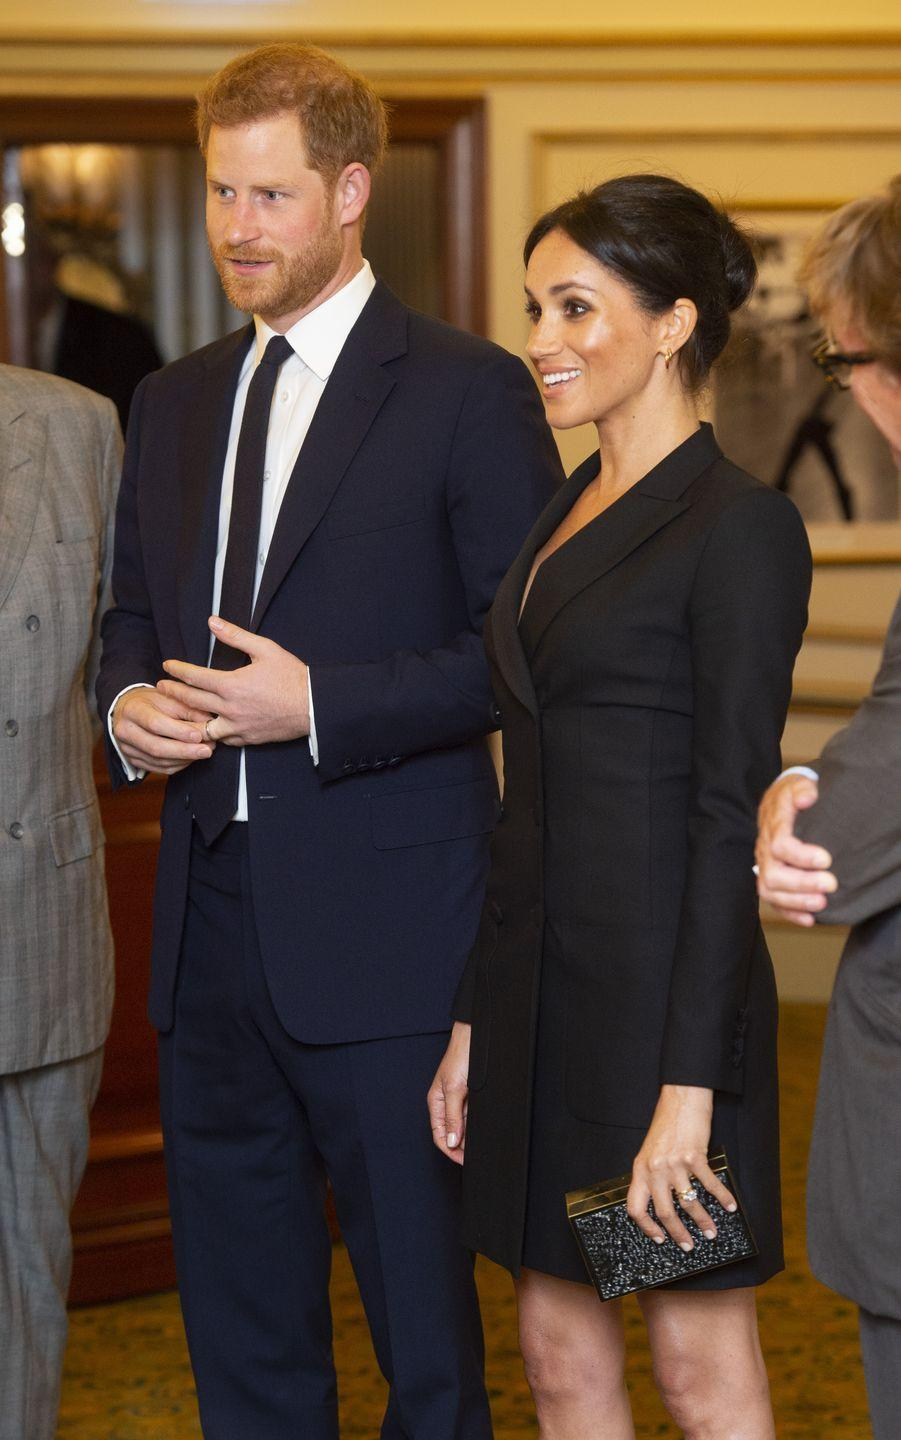 "<p>The couple showed up with matching smiles <a href=""https://www.townandcountrymag.com/style/fashion-trends/a22861883/meghan-markle-black-mini-dress-judith-charles-hamilton-sentebale-gala/"" rel=""nofollow noopener"" target=""_blank"" data-ylk=""slk:and coordinating black ensembles"" class=""link rapid-noclick-resp"">and coordinating black ensembles</a> to the gala performance of the hit musical in London. </p>"